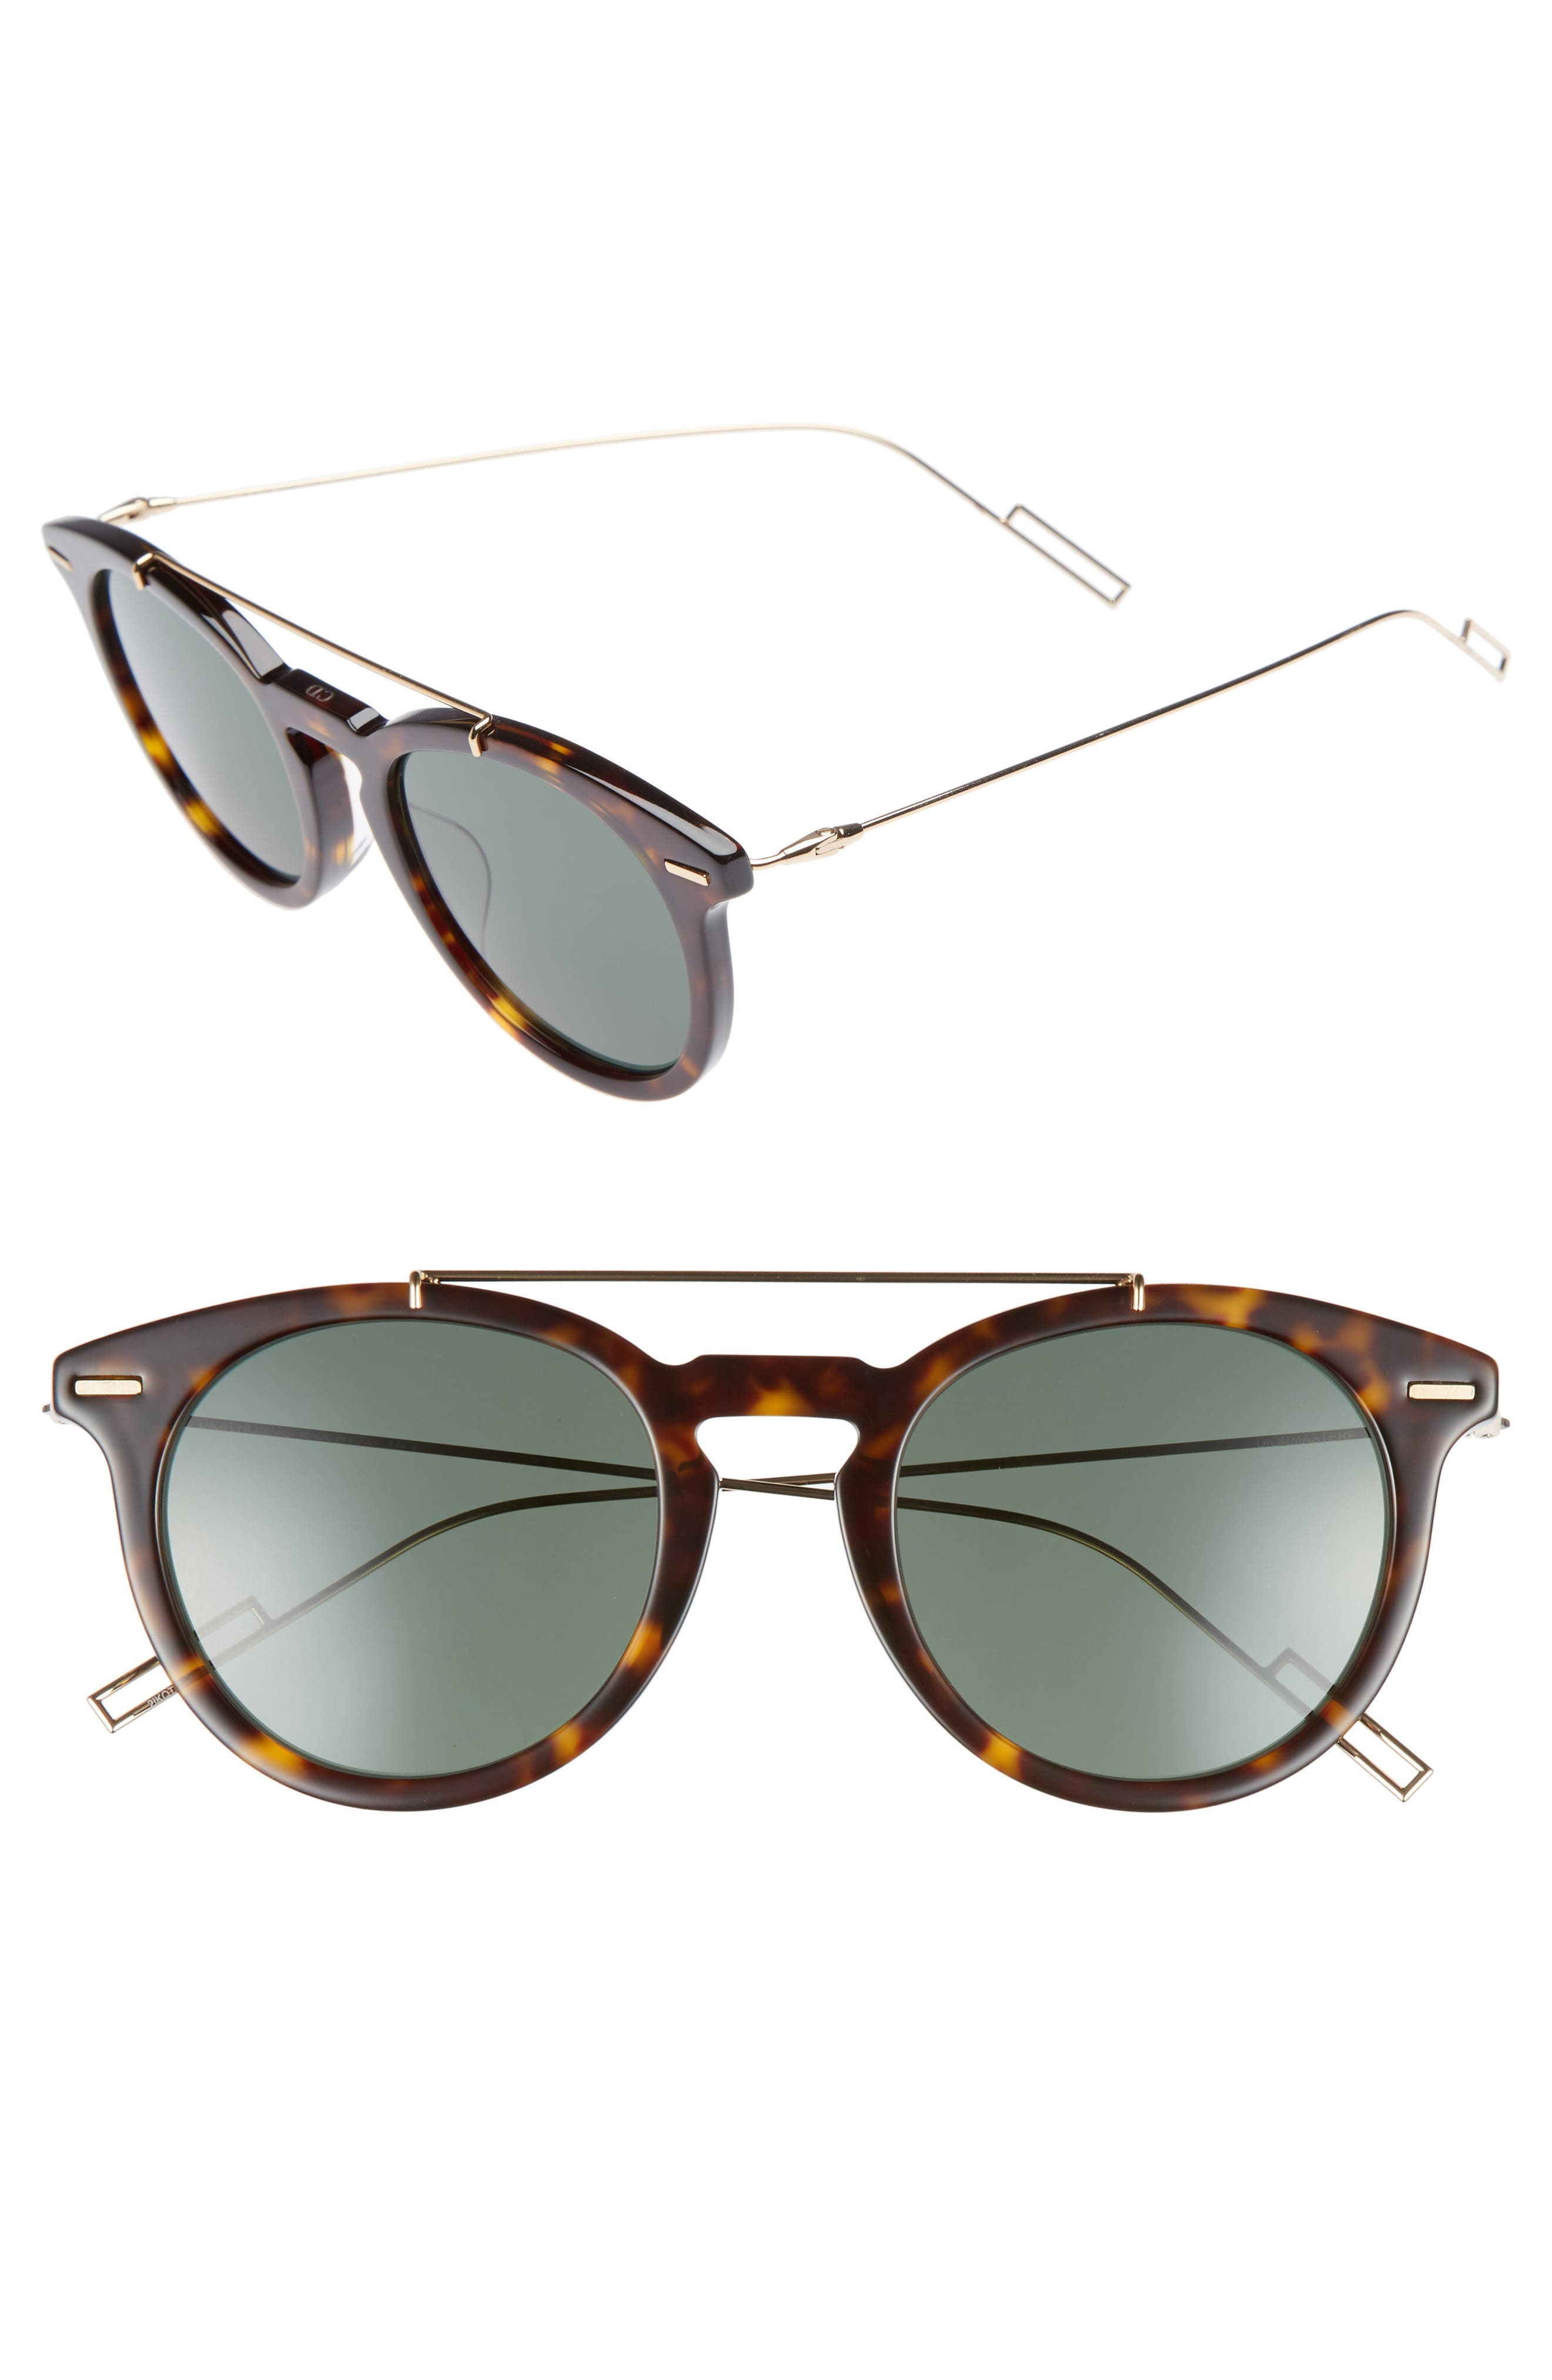 Master 51mm Sunglasses,                         Main,                         color, Havana Gold